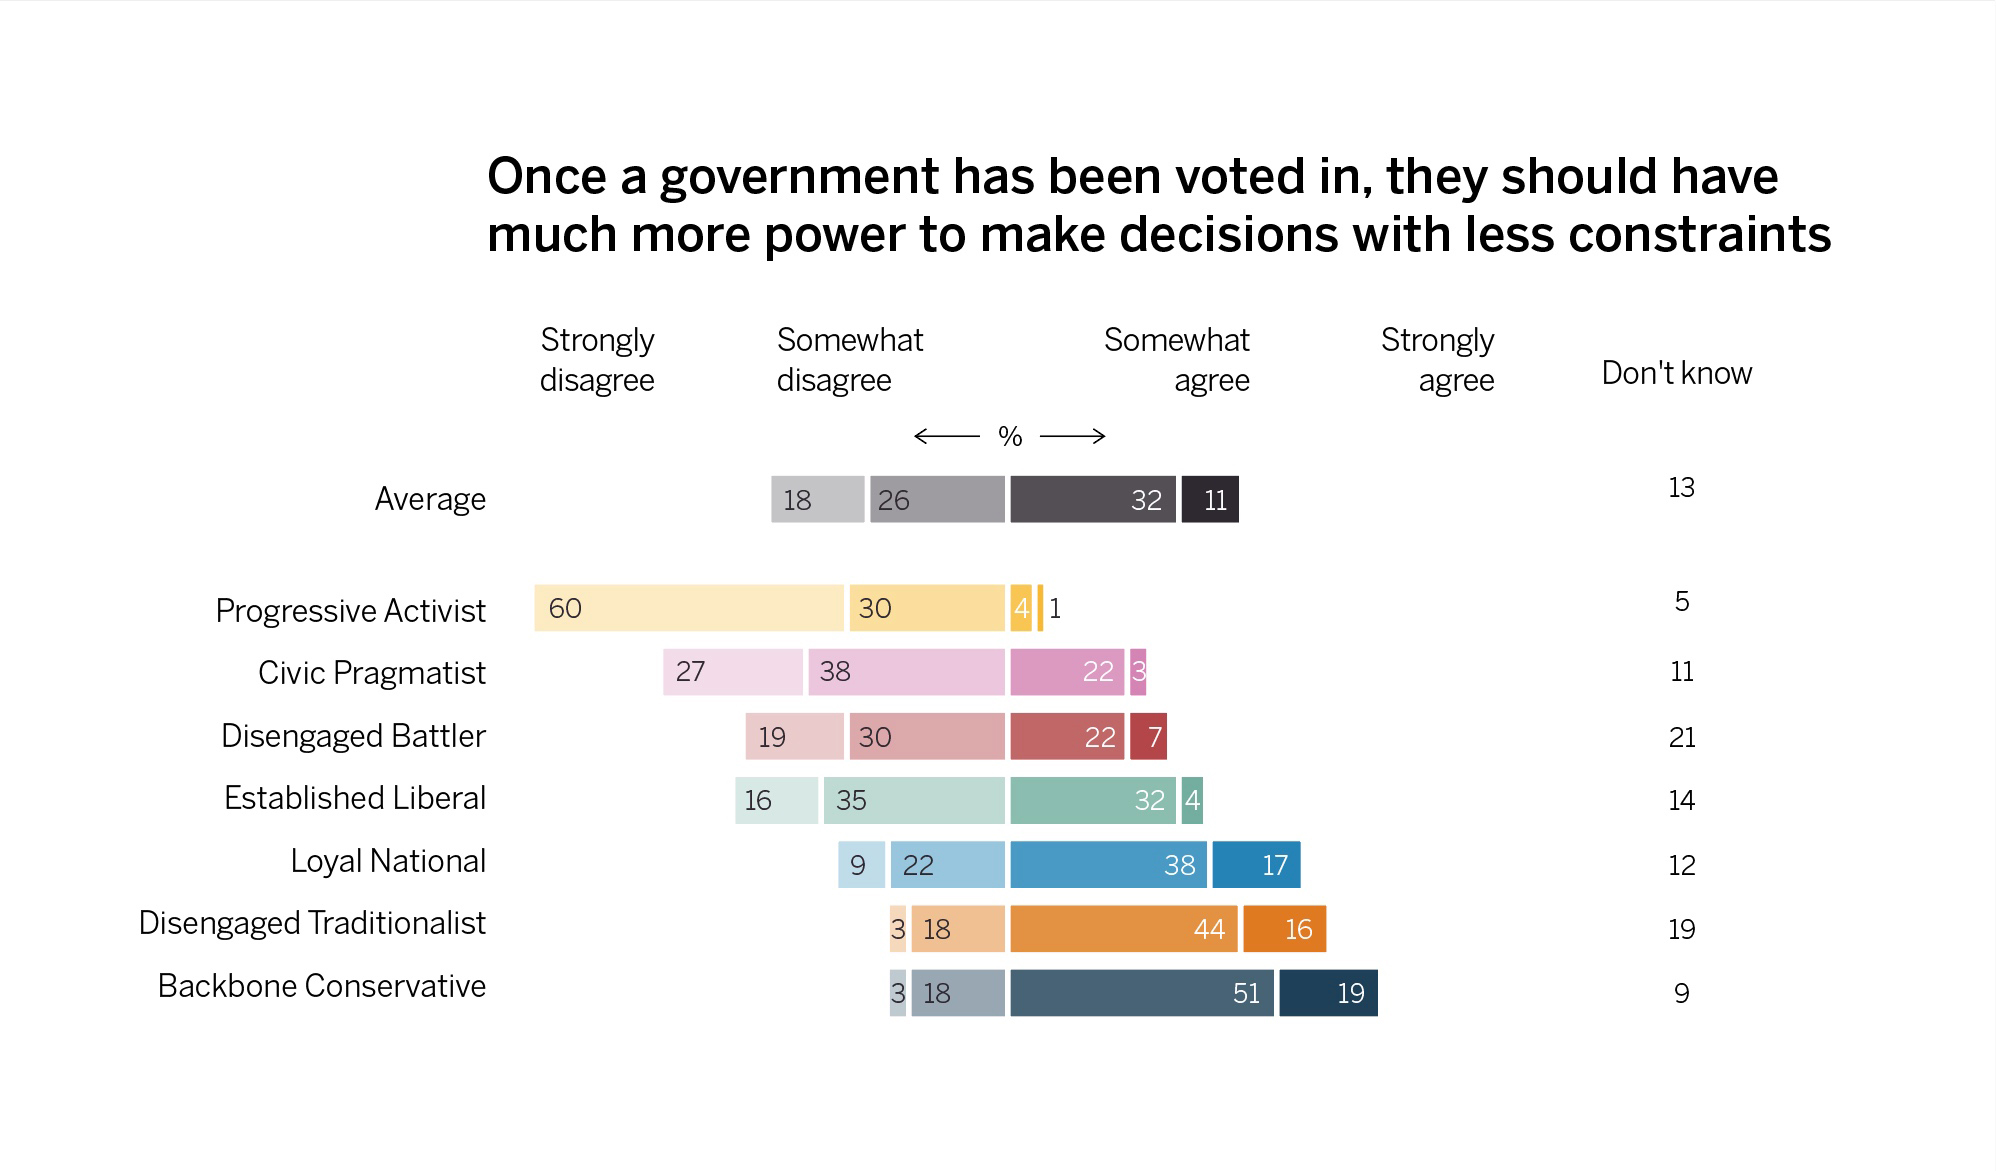 Loyal Nationals share an authoritarian stance on governance with other right-leaning segments